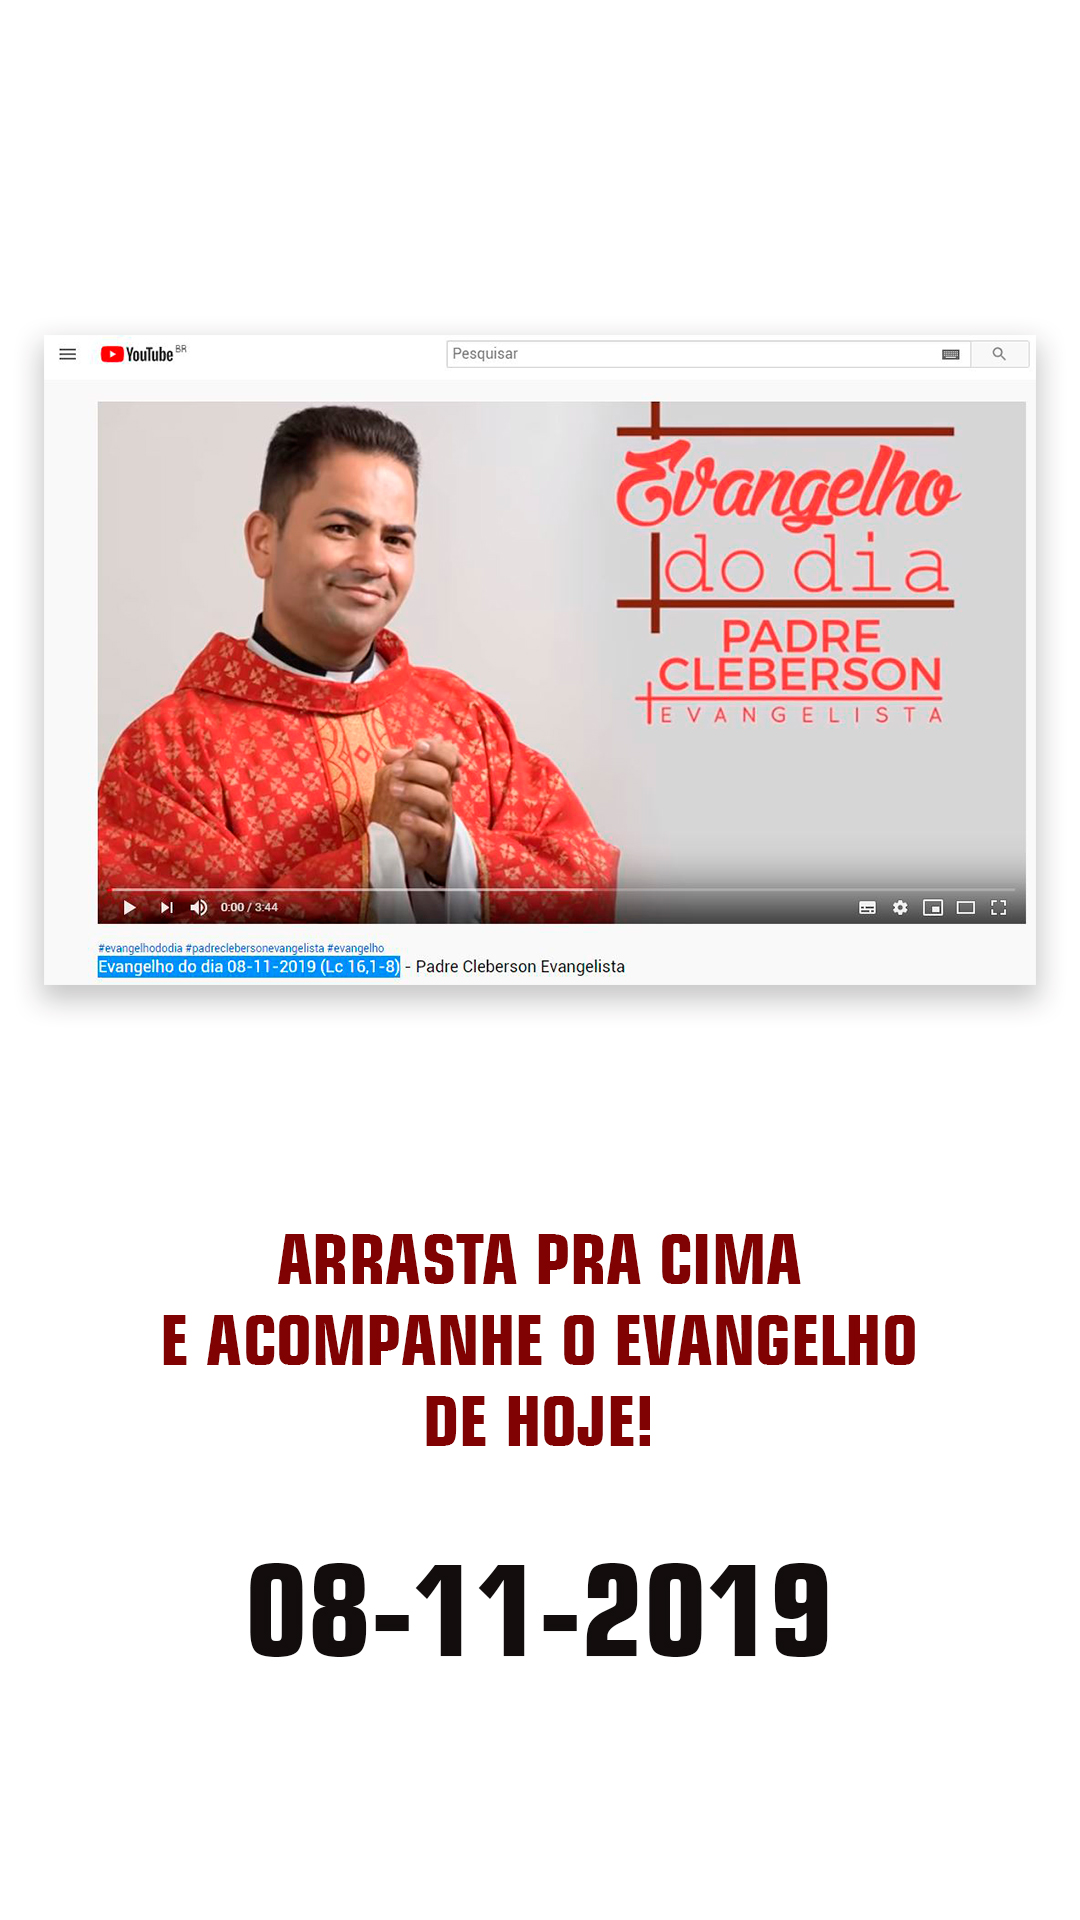 Pregação nova do padre Cleberson no Youtube